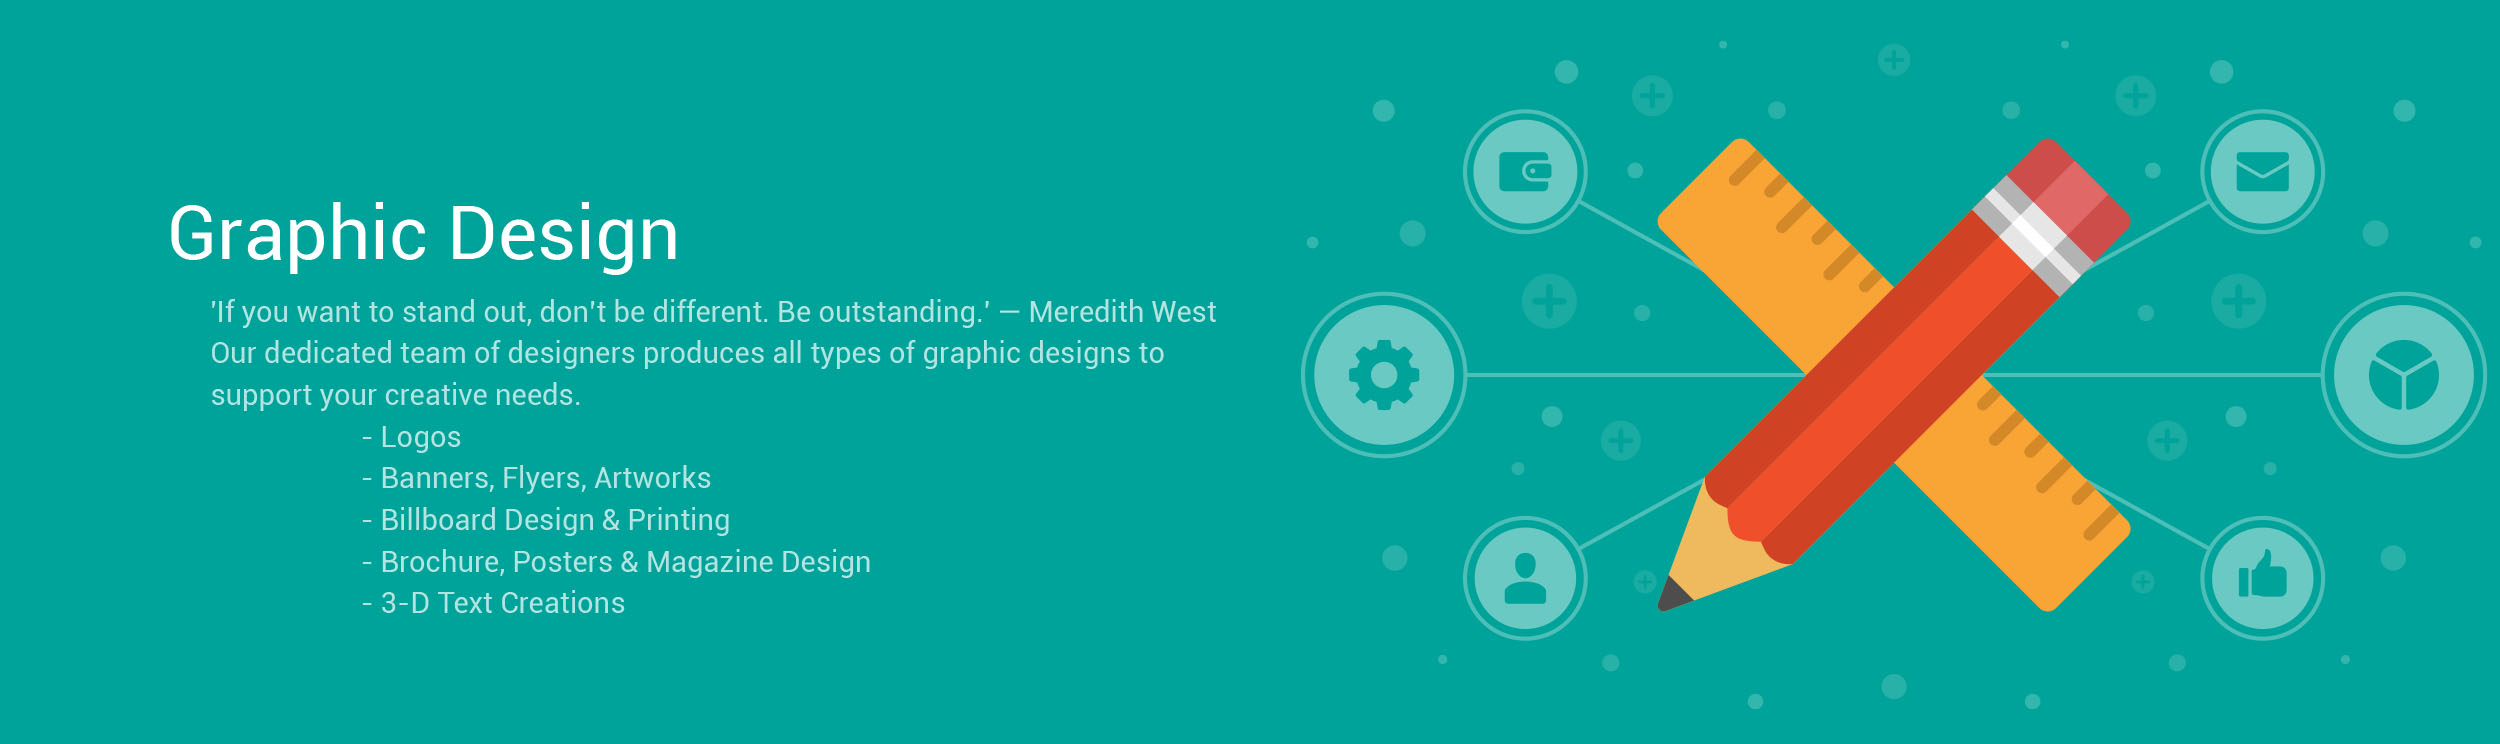 Graphic Design Mauritius logos, posters, magazines, designs